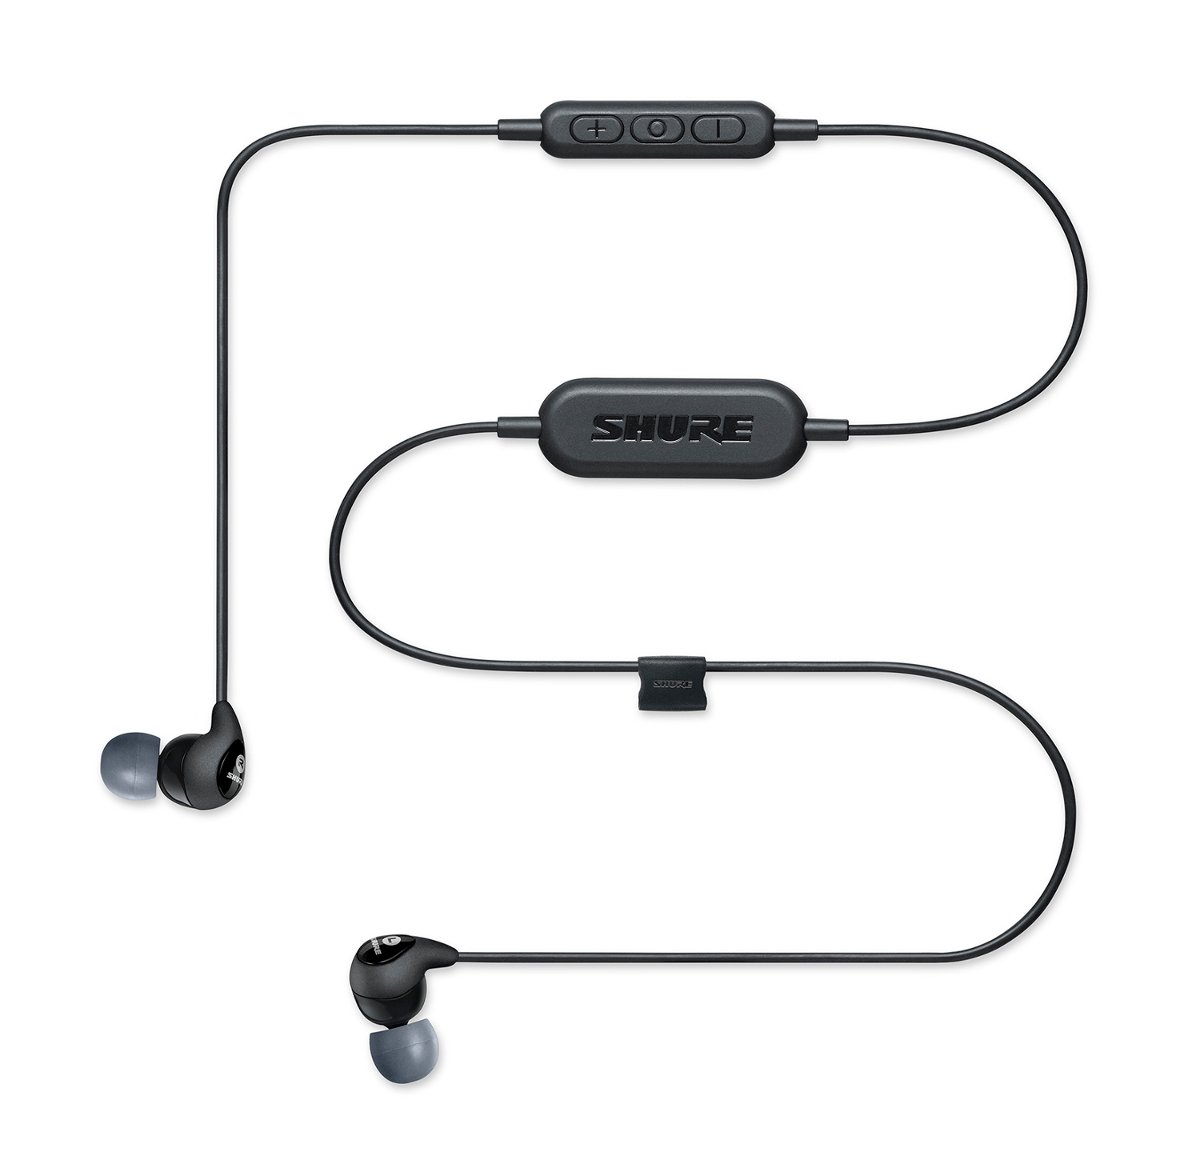 91c22a0b27a SE112 Wireless SE112 Bluetooth Earphone by Shure, SE112-K-BT1 | Full ...